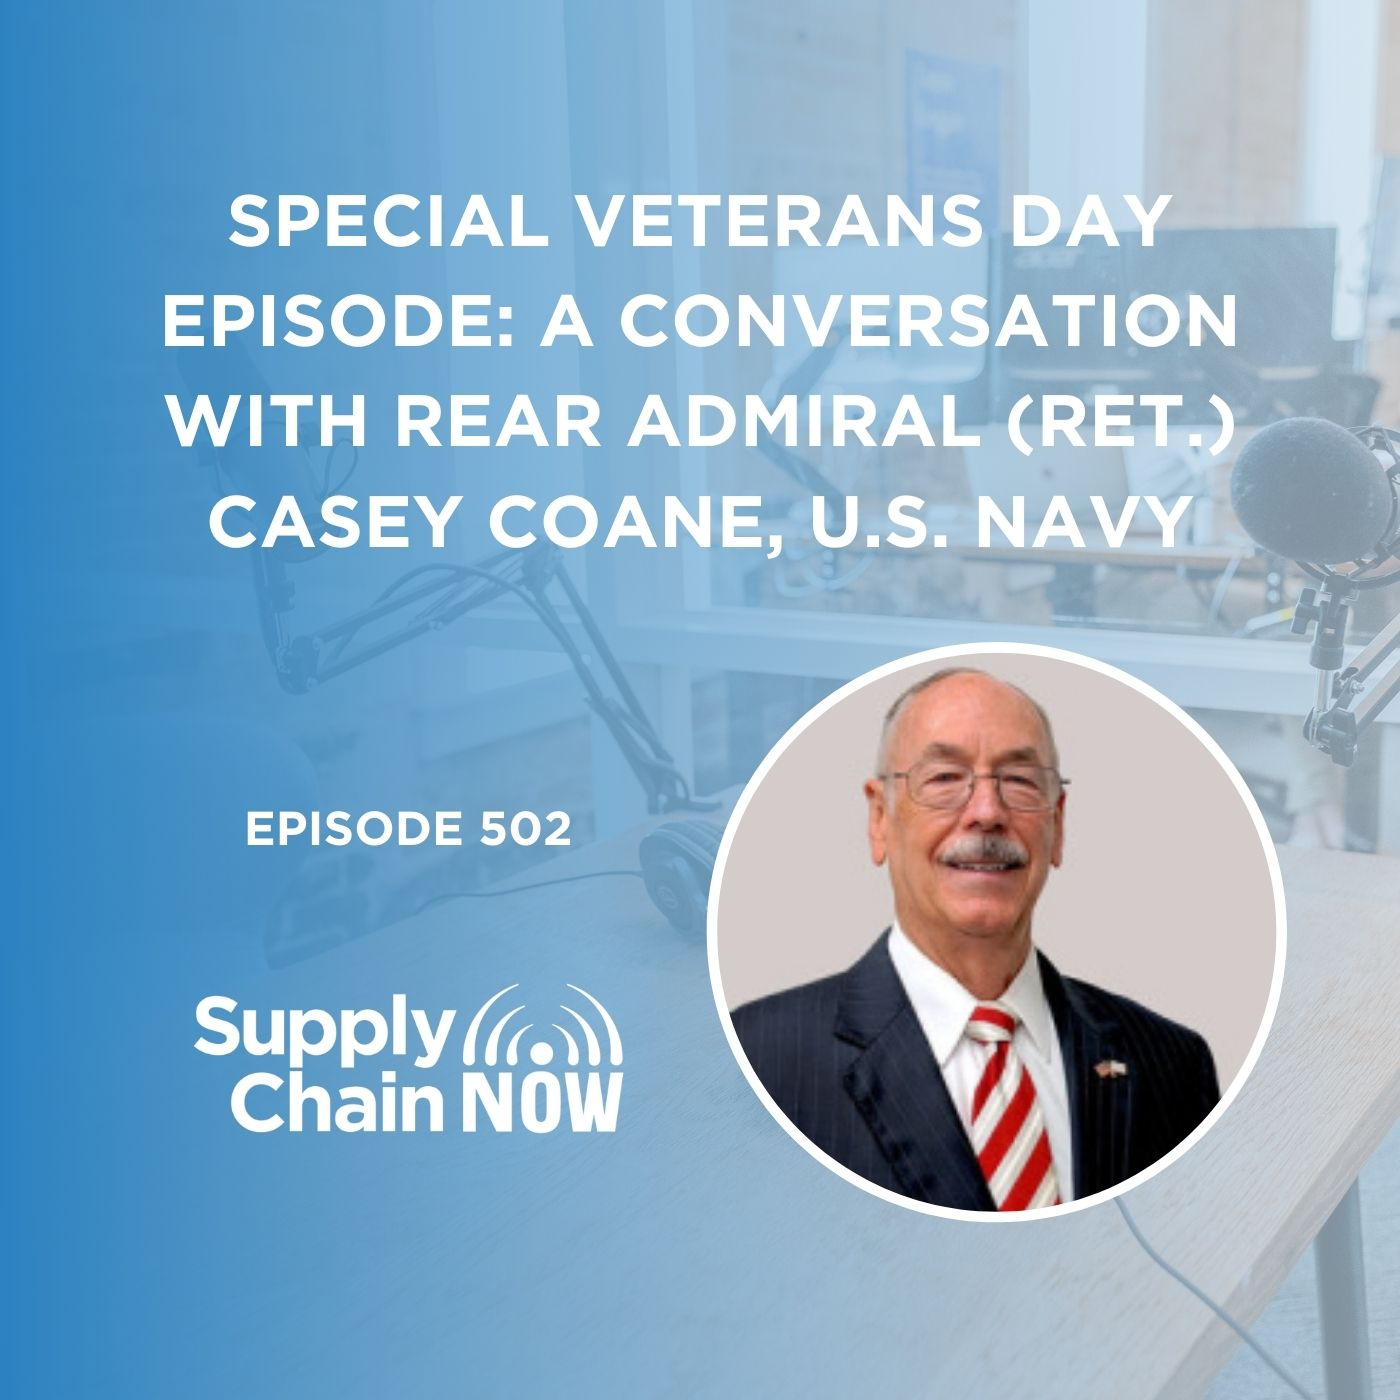 Special Veterans Day Episode: A Conversation with Rear Admiral (Ret.) Casey Coane, U.S. Navy